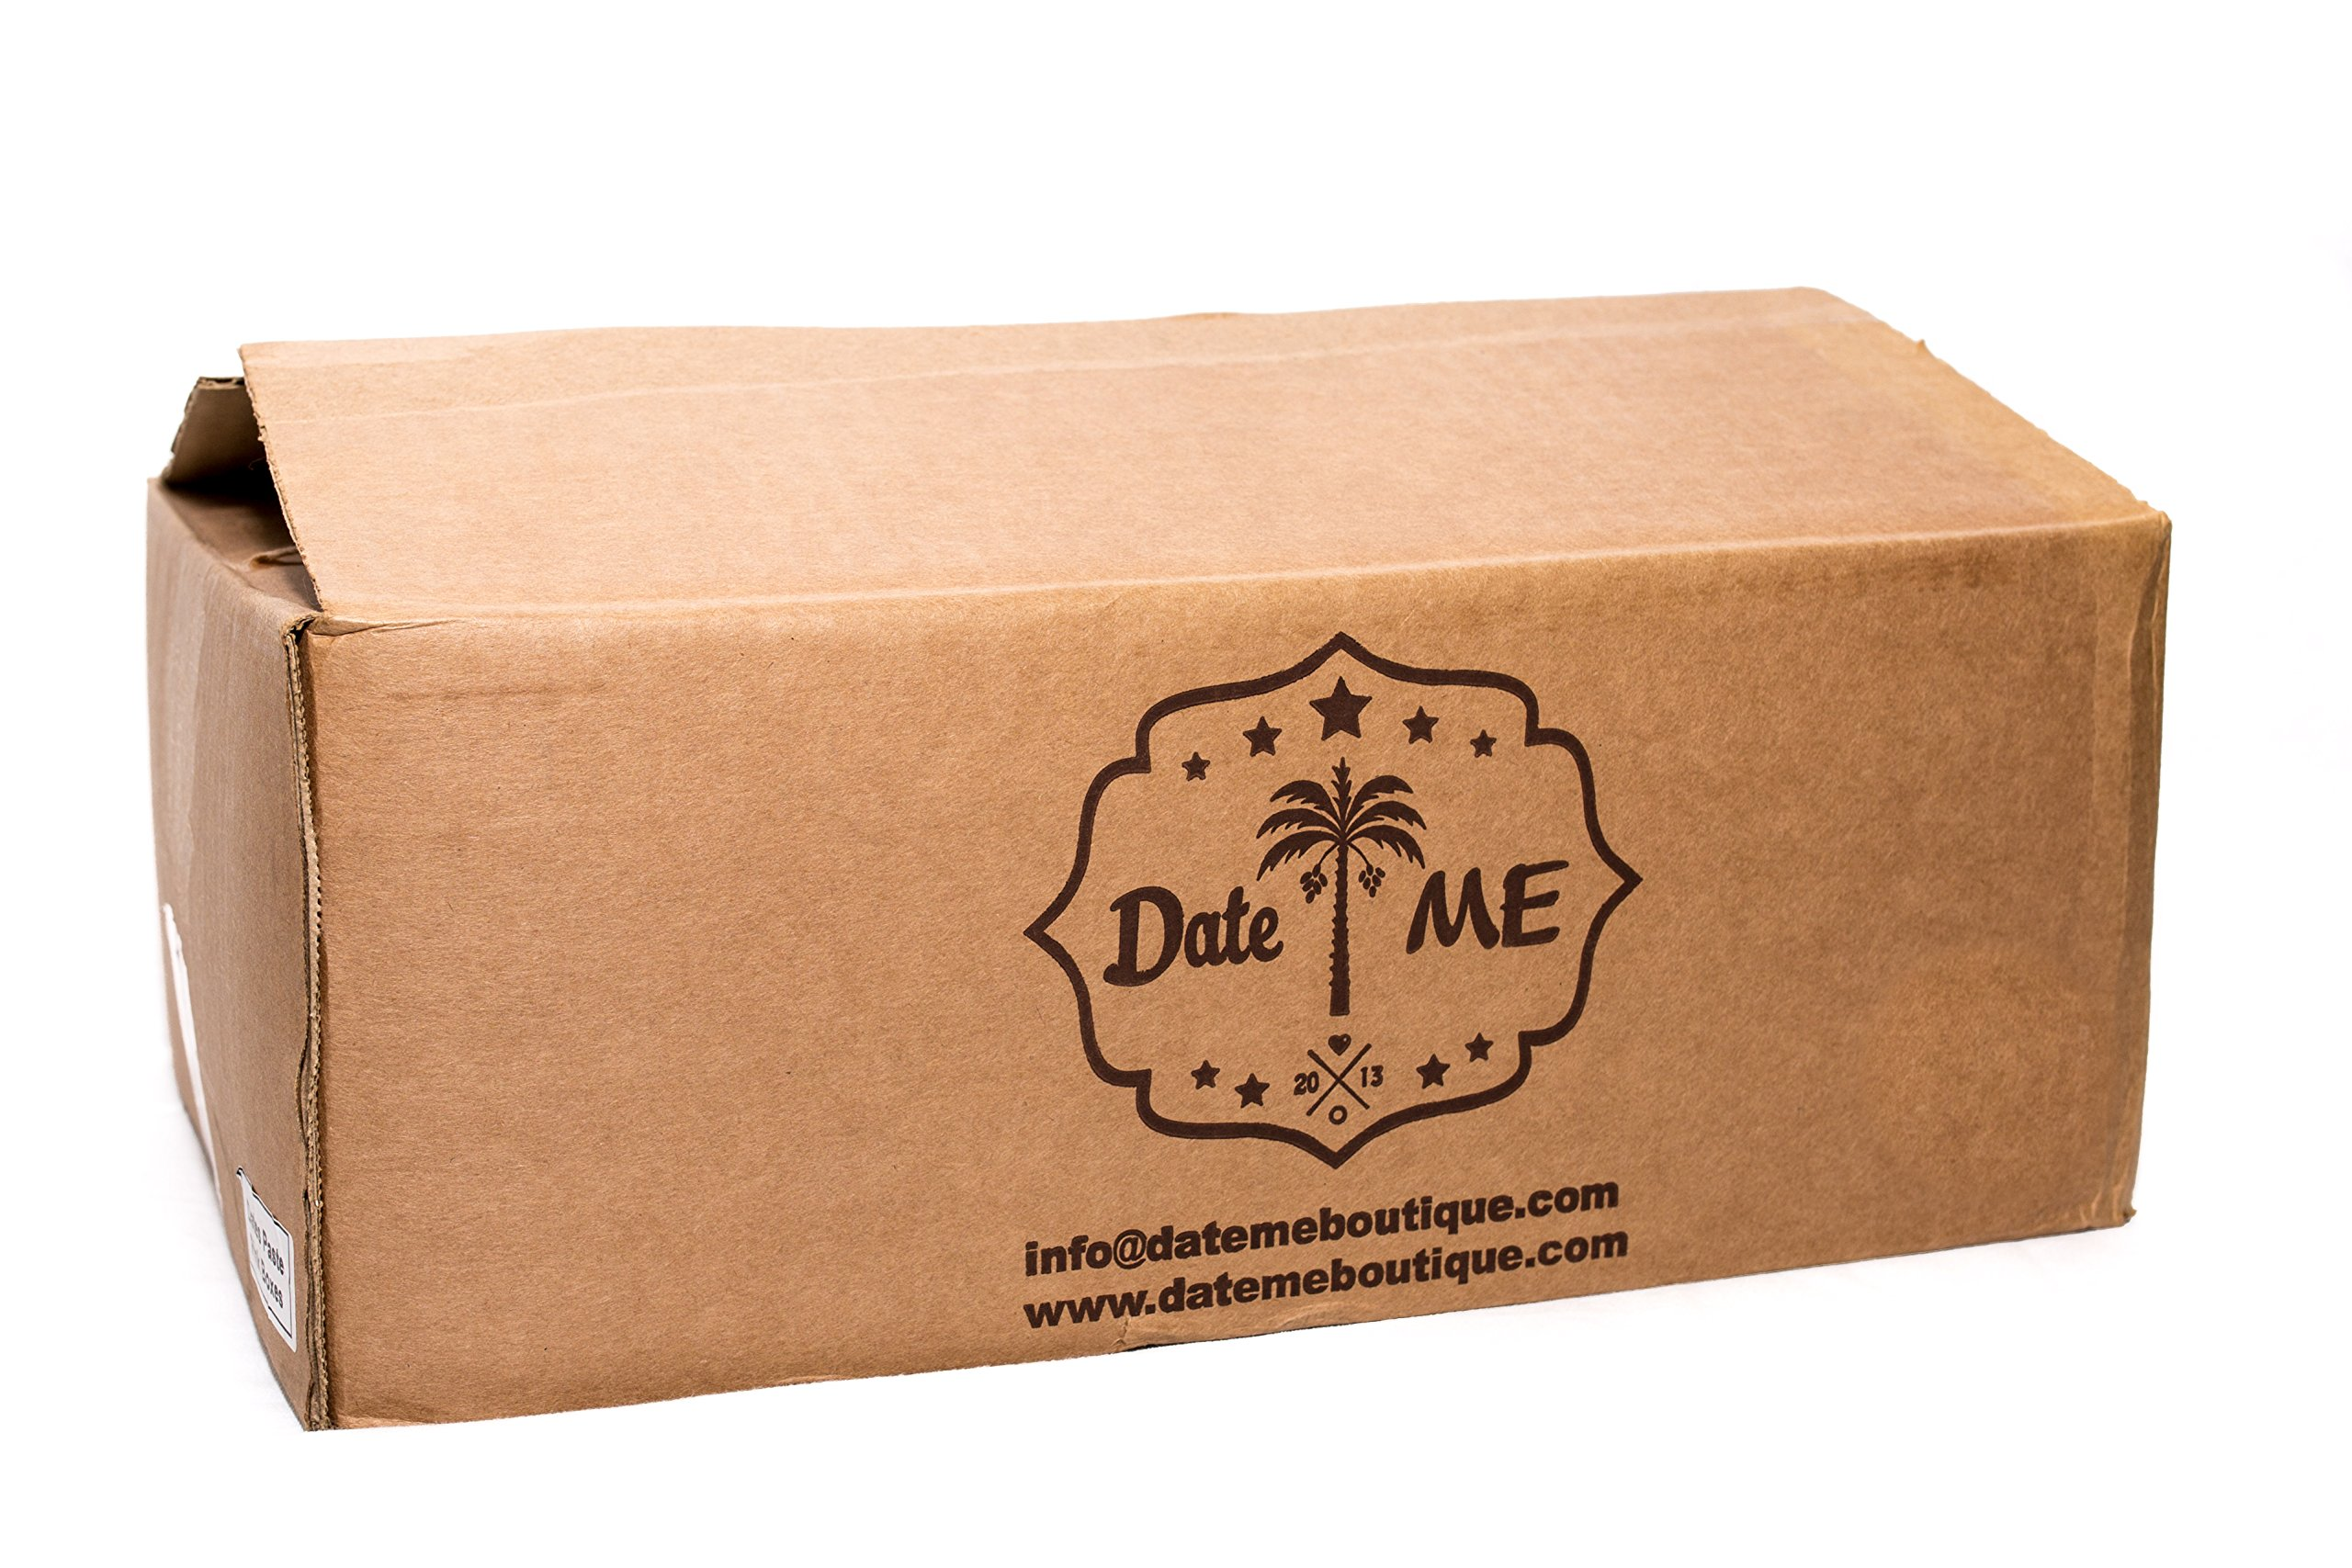 100% All Natural date paste/spread - Carton of 12 x 2.2lbs packs (BULK) The whole food sweetener for baking, snacks, smoothies and more